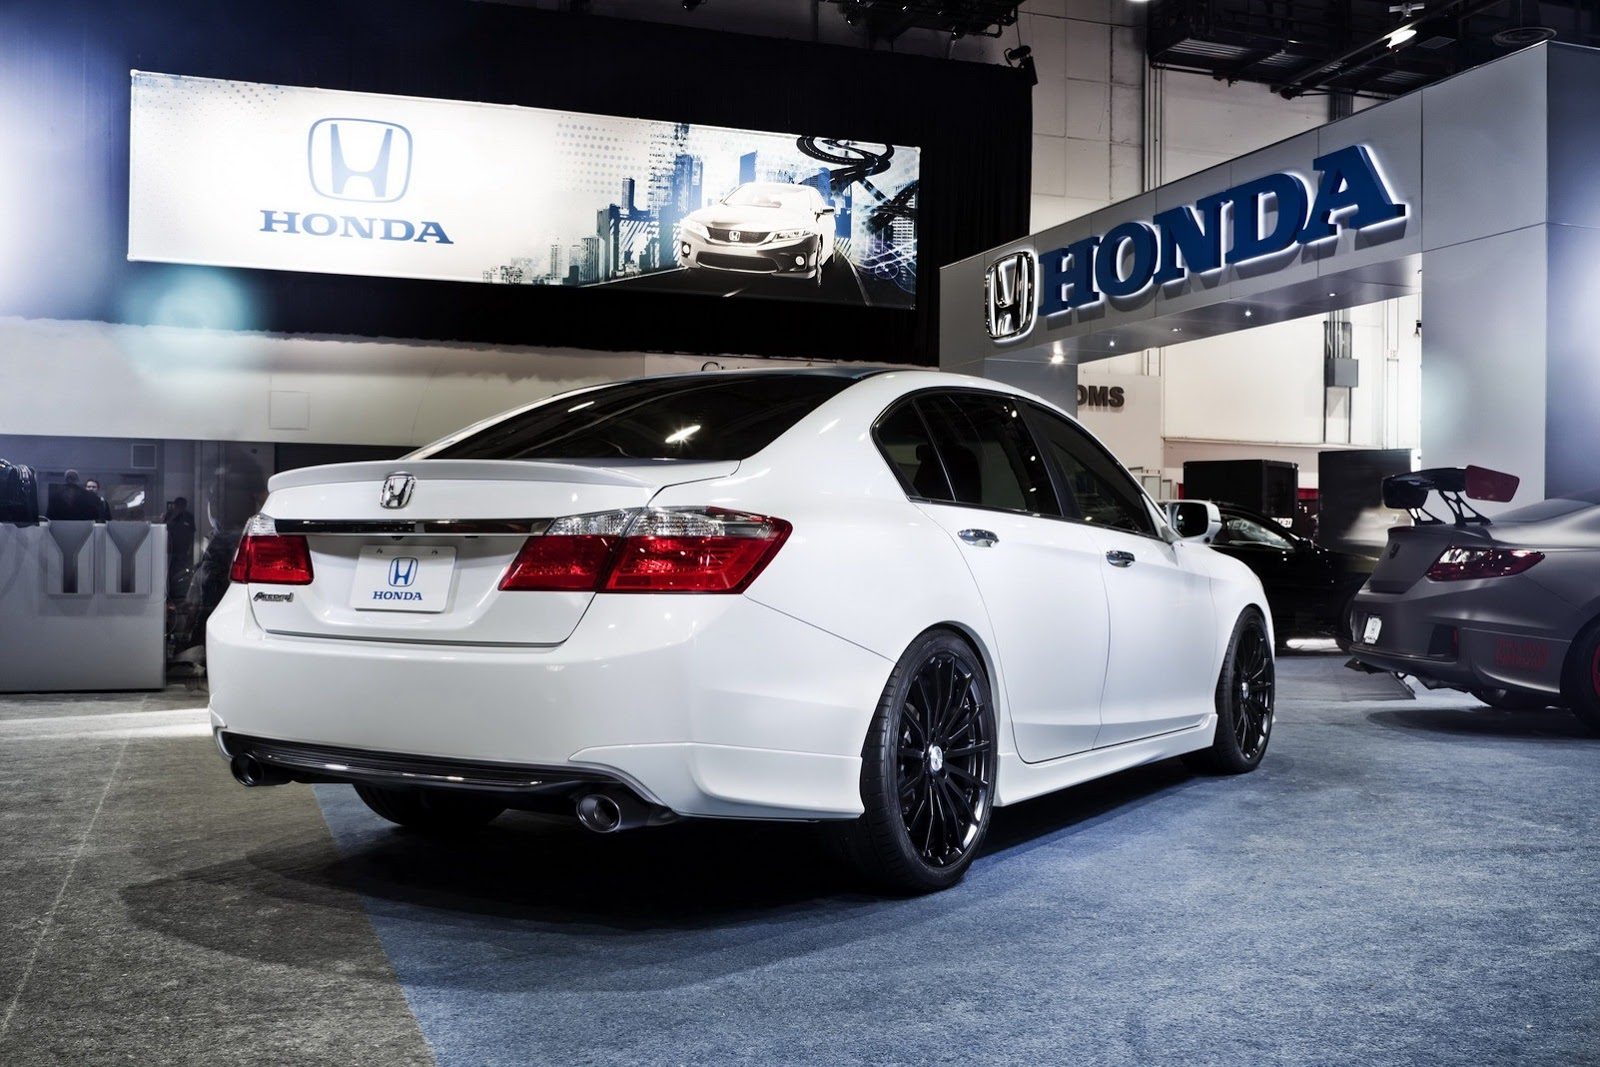 Honda Accords For Sale 2013 Honda Accord by DSO Eyewear at 2012 SEMA - autoevolution